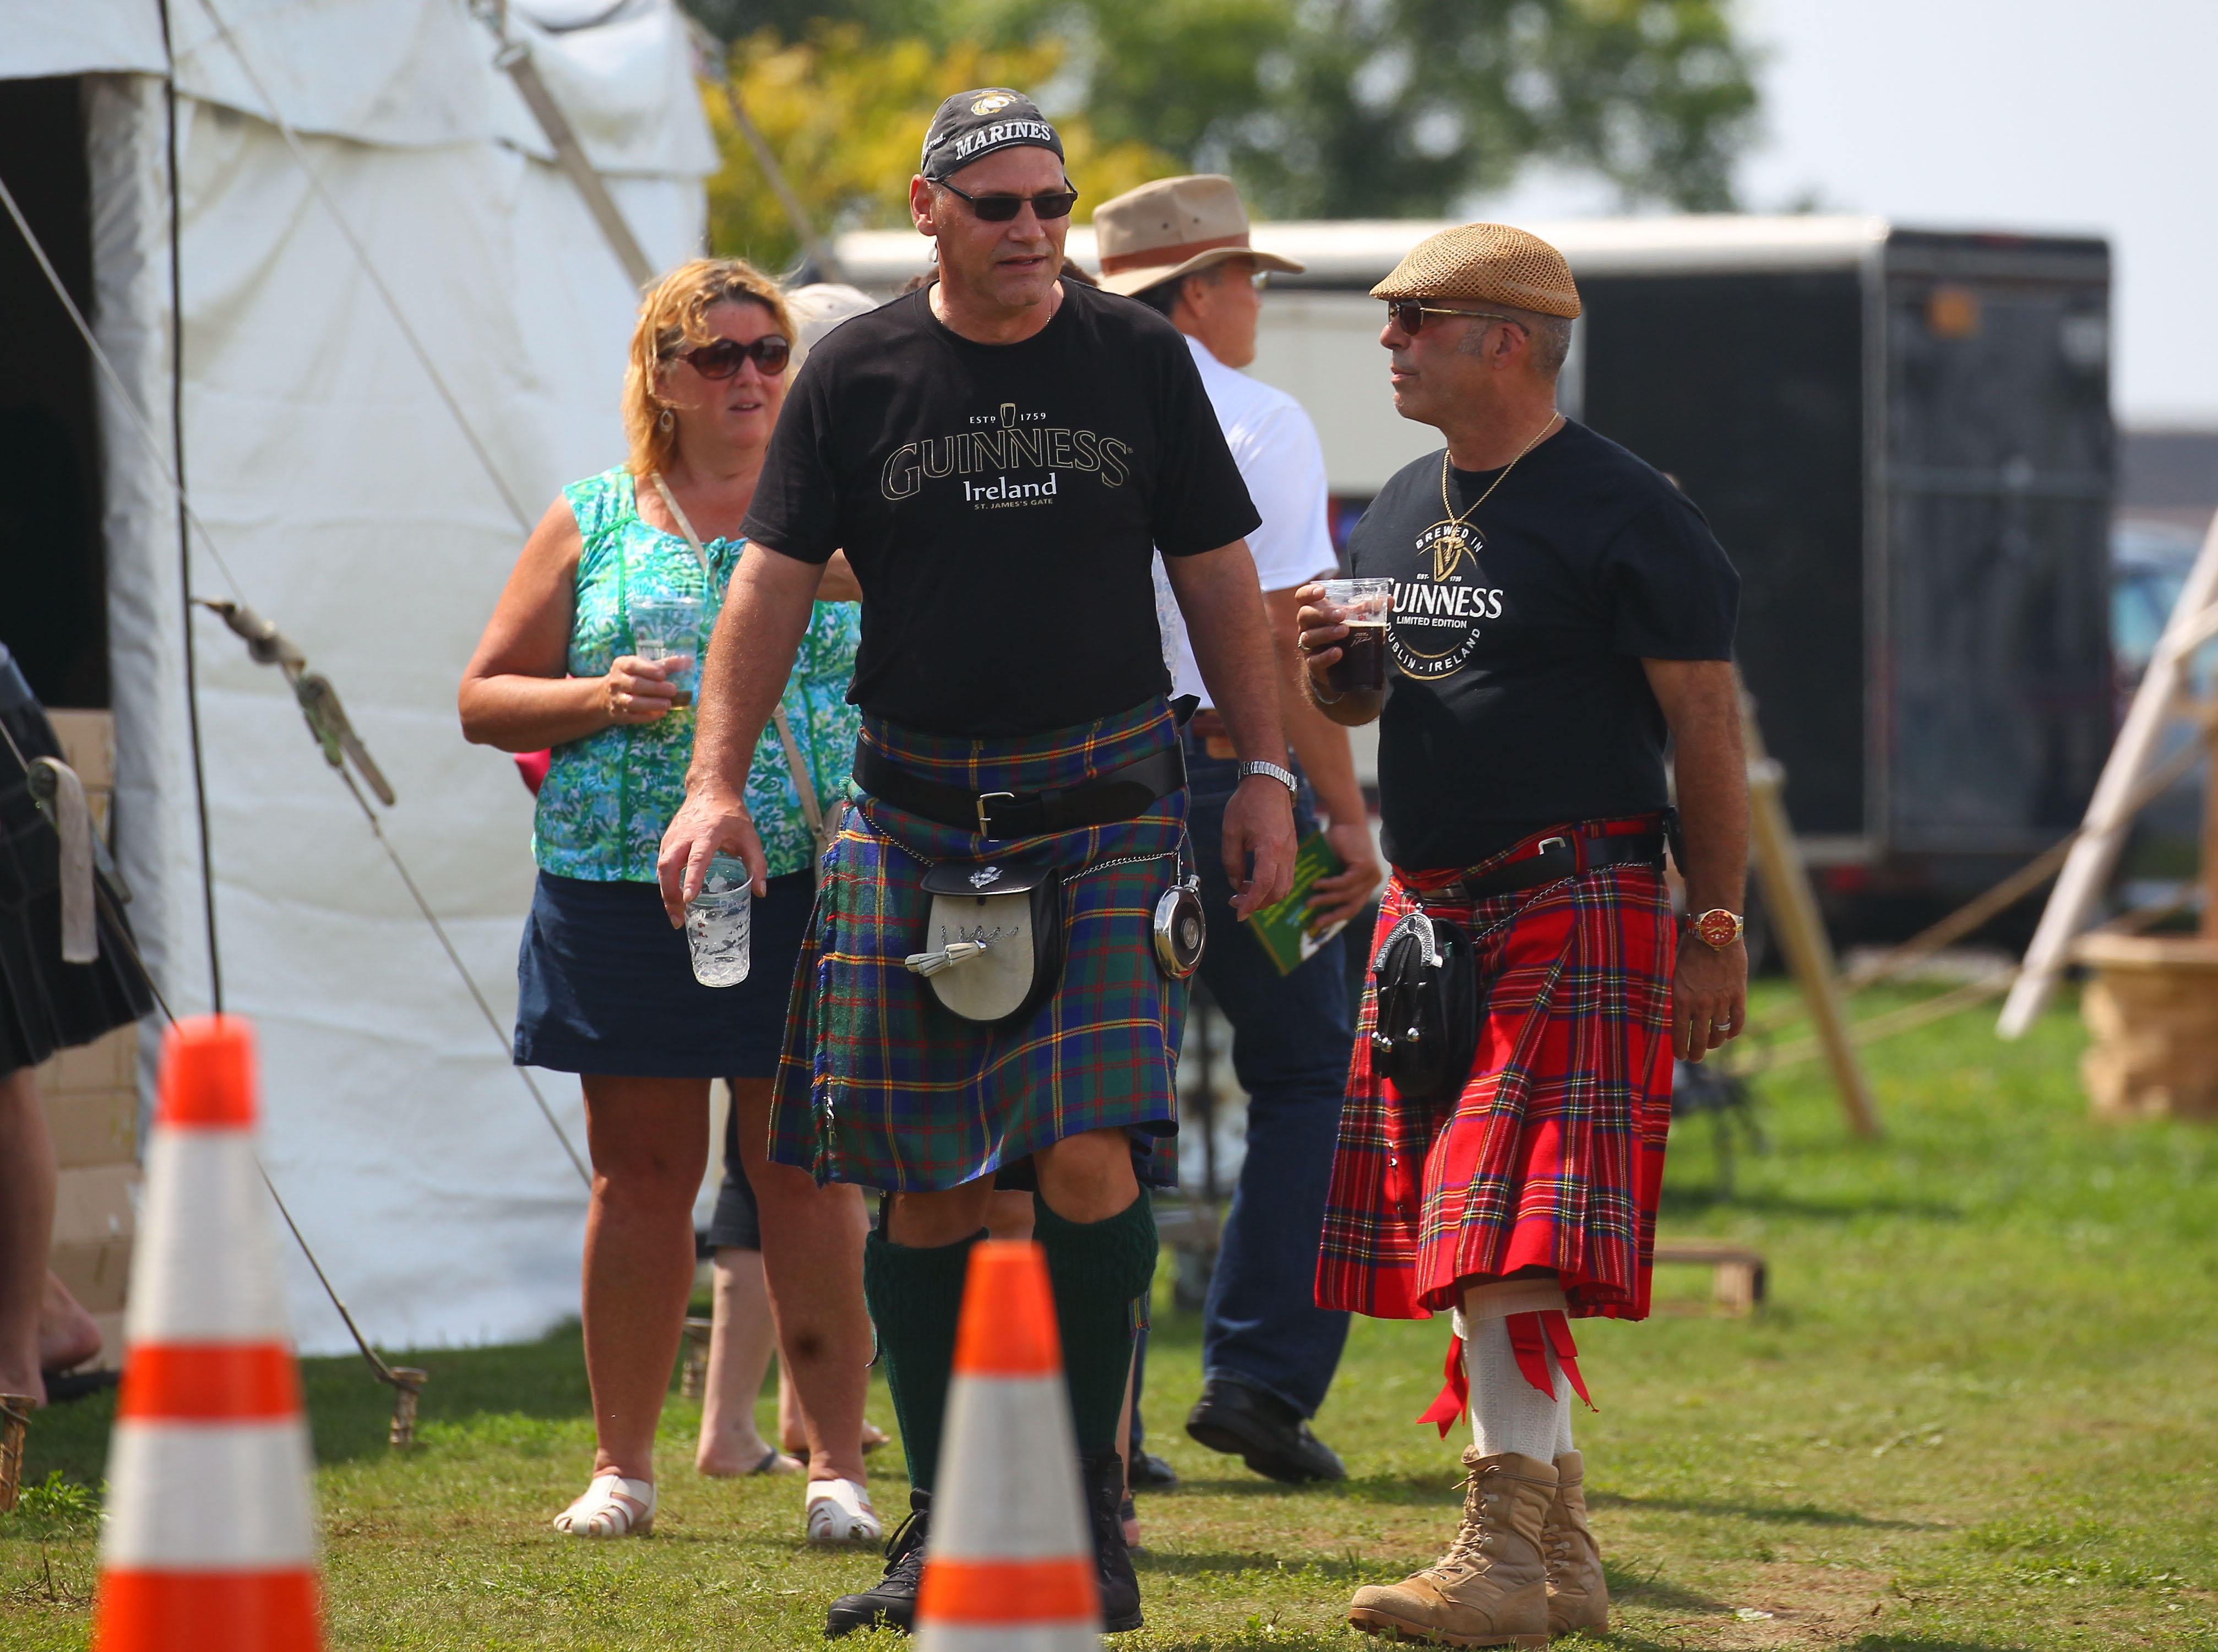 Marty Bugal, left, and Eddy Valasquez wear their kilts during the Buffalo Irish Festival at Wilkeson Point in Buffalo on Sunday, August 28, 2016. (Mark Mulville/Buffalo News)